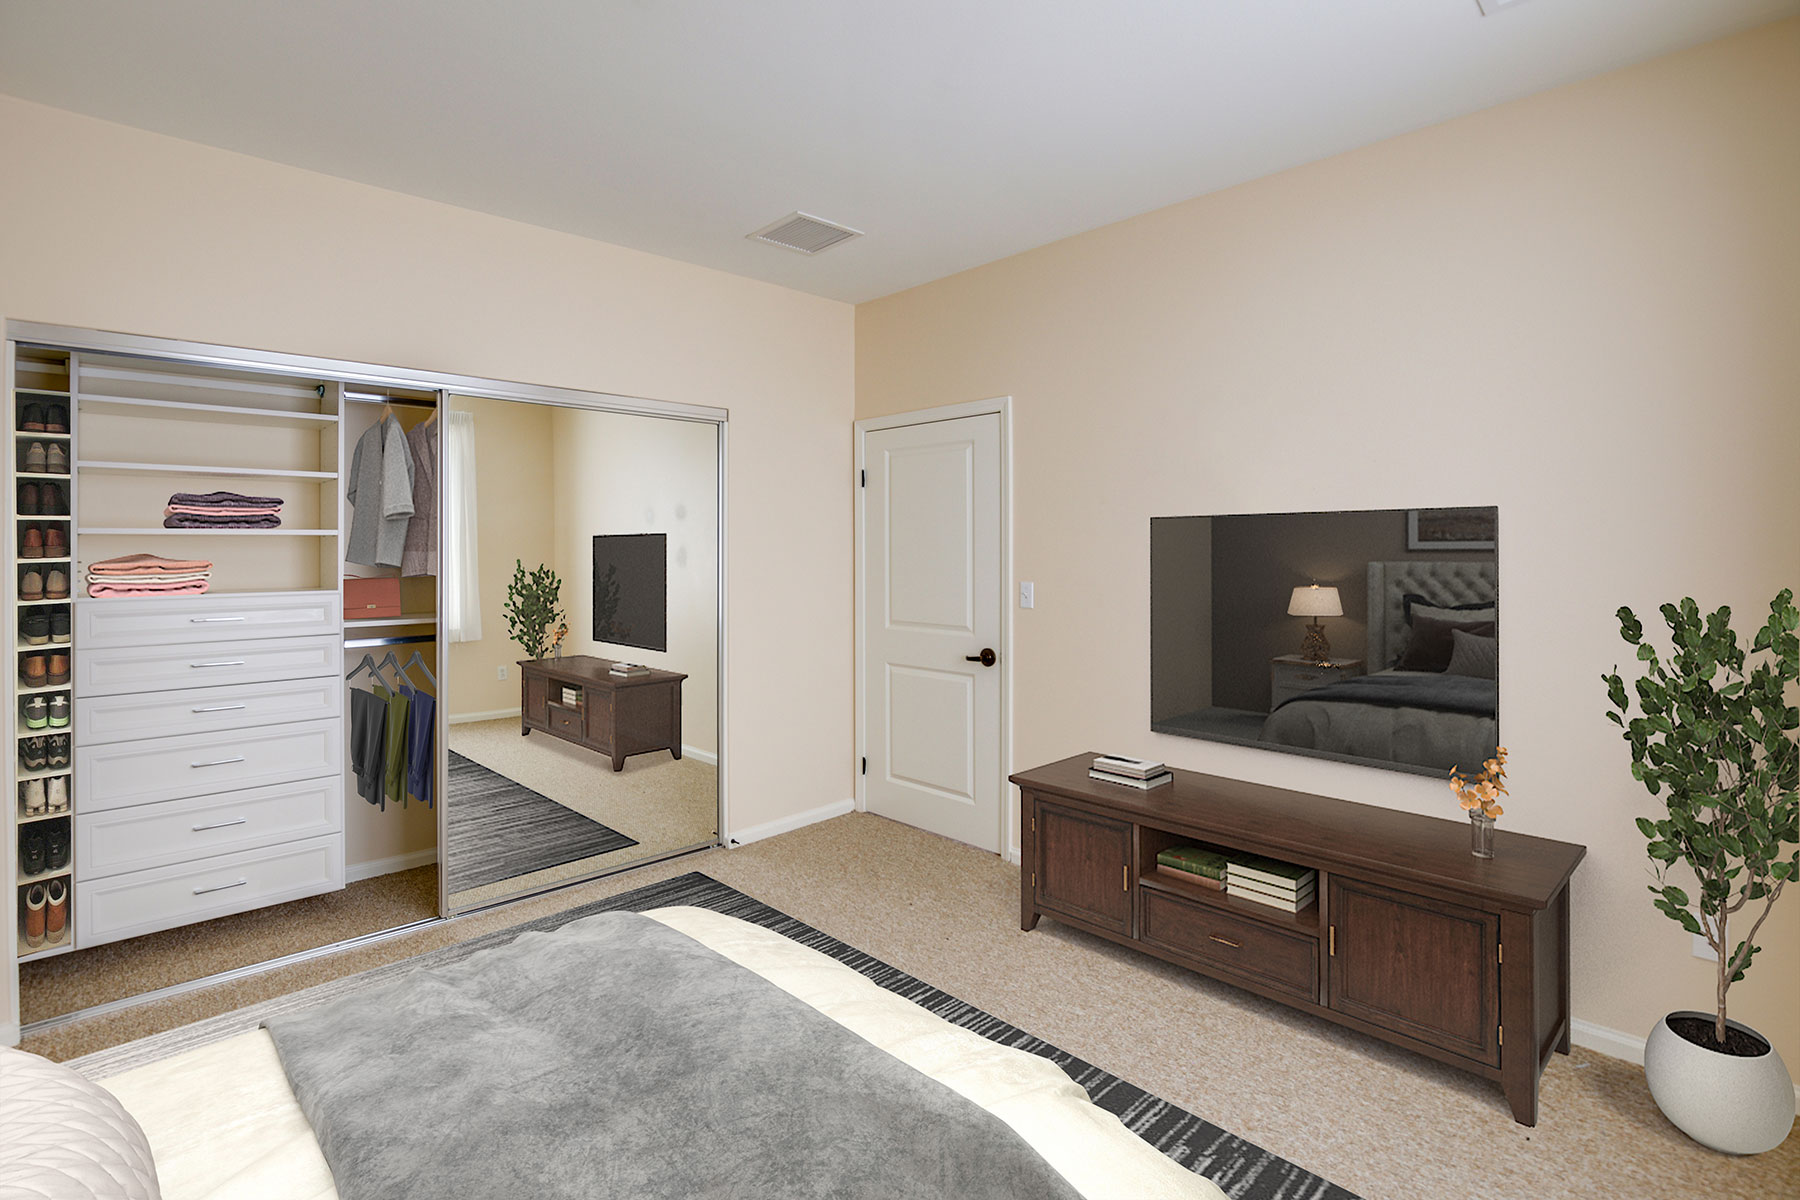 Assisted Living bedroom and closet.